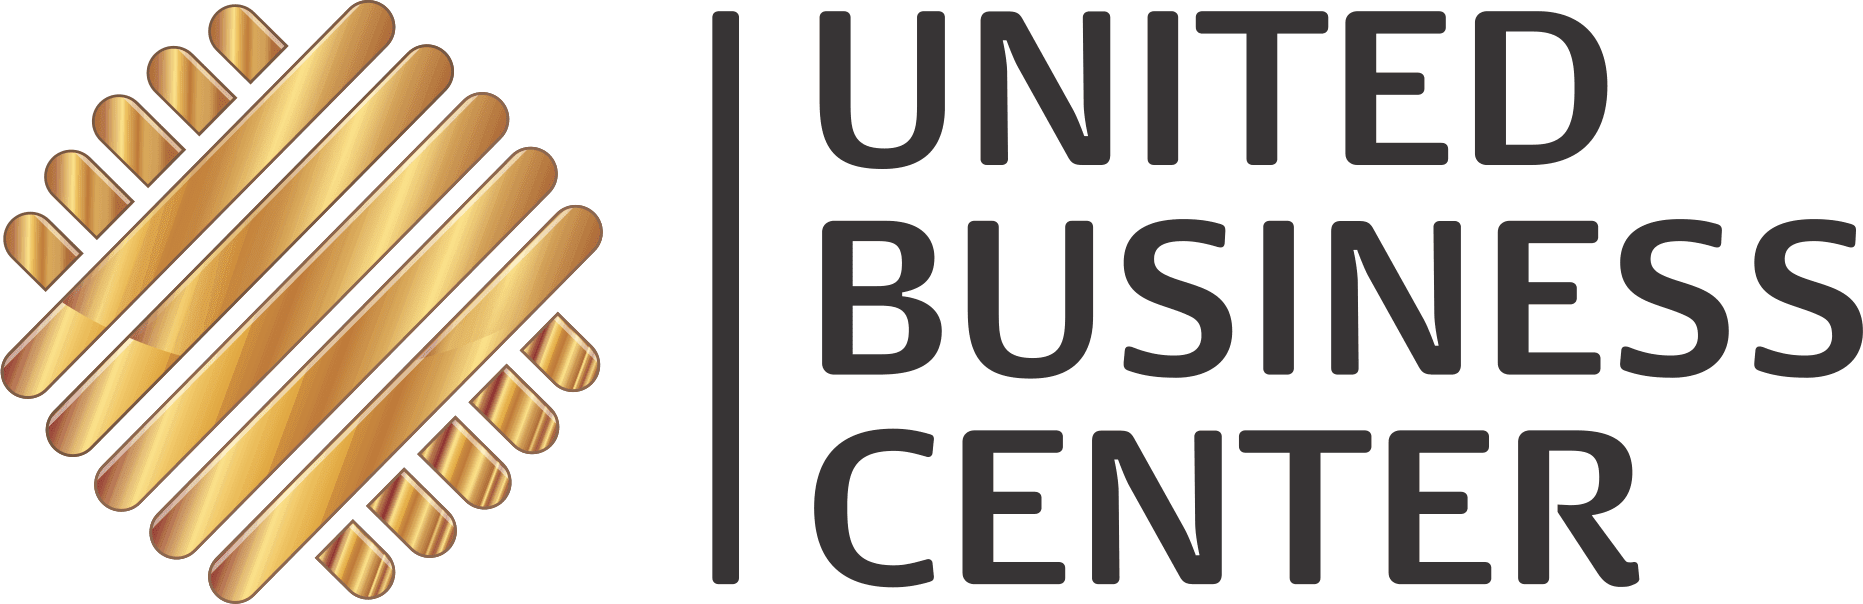 united-business center